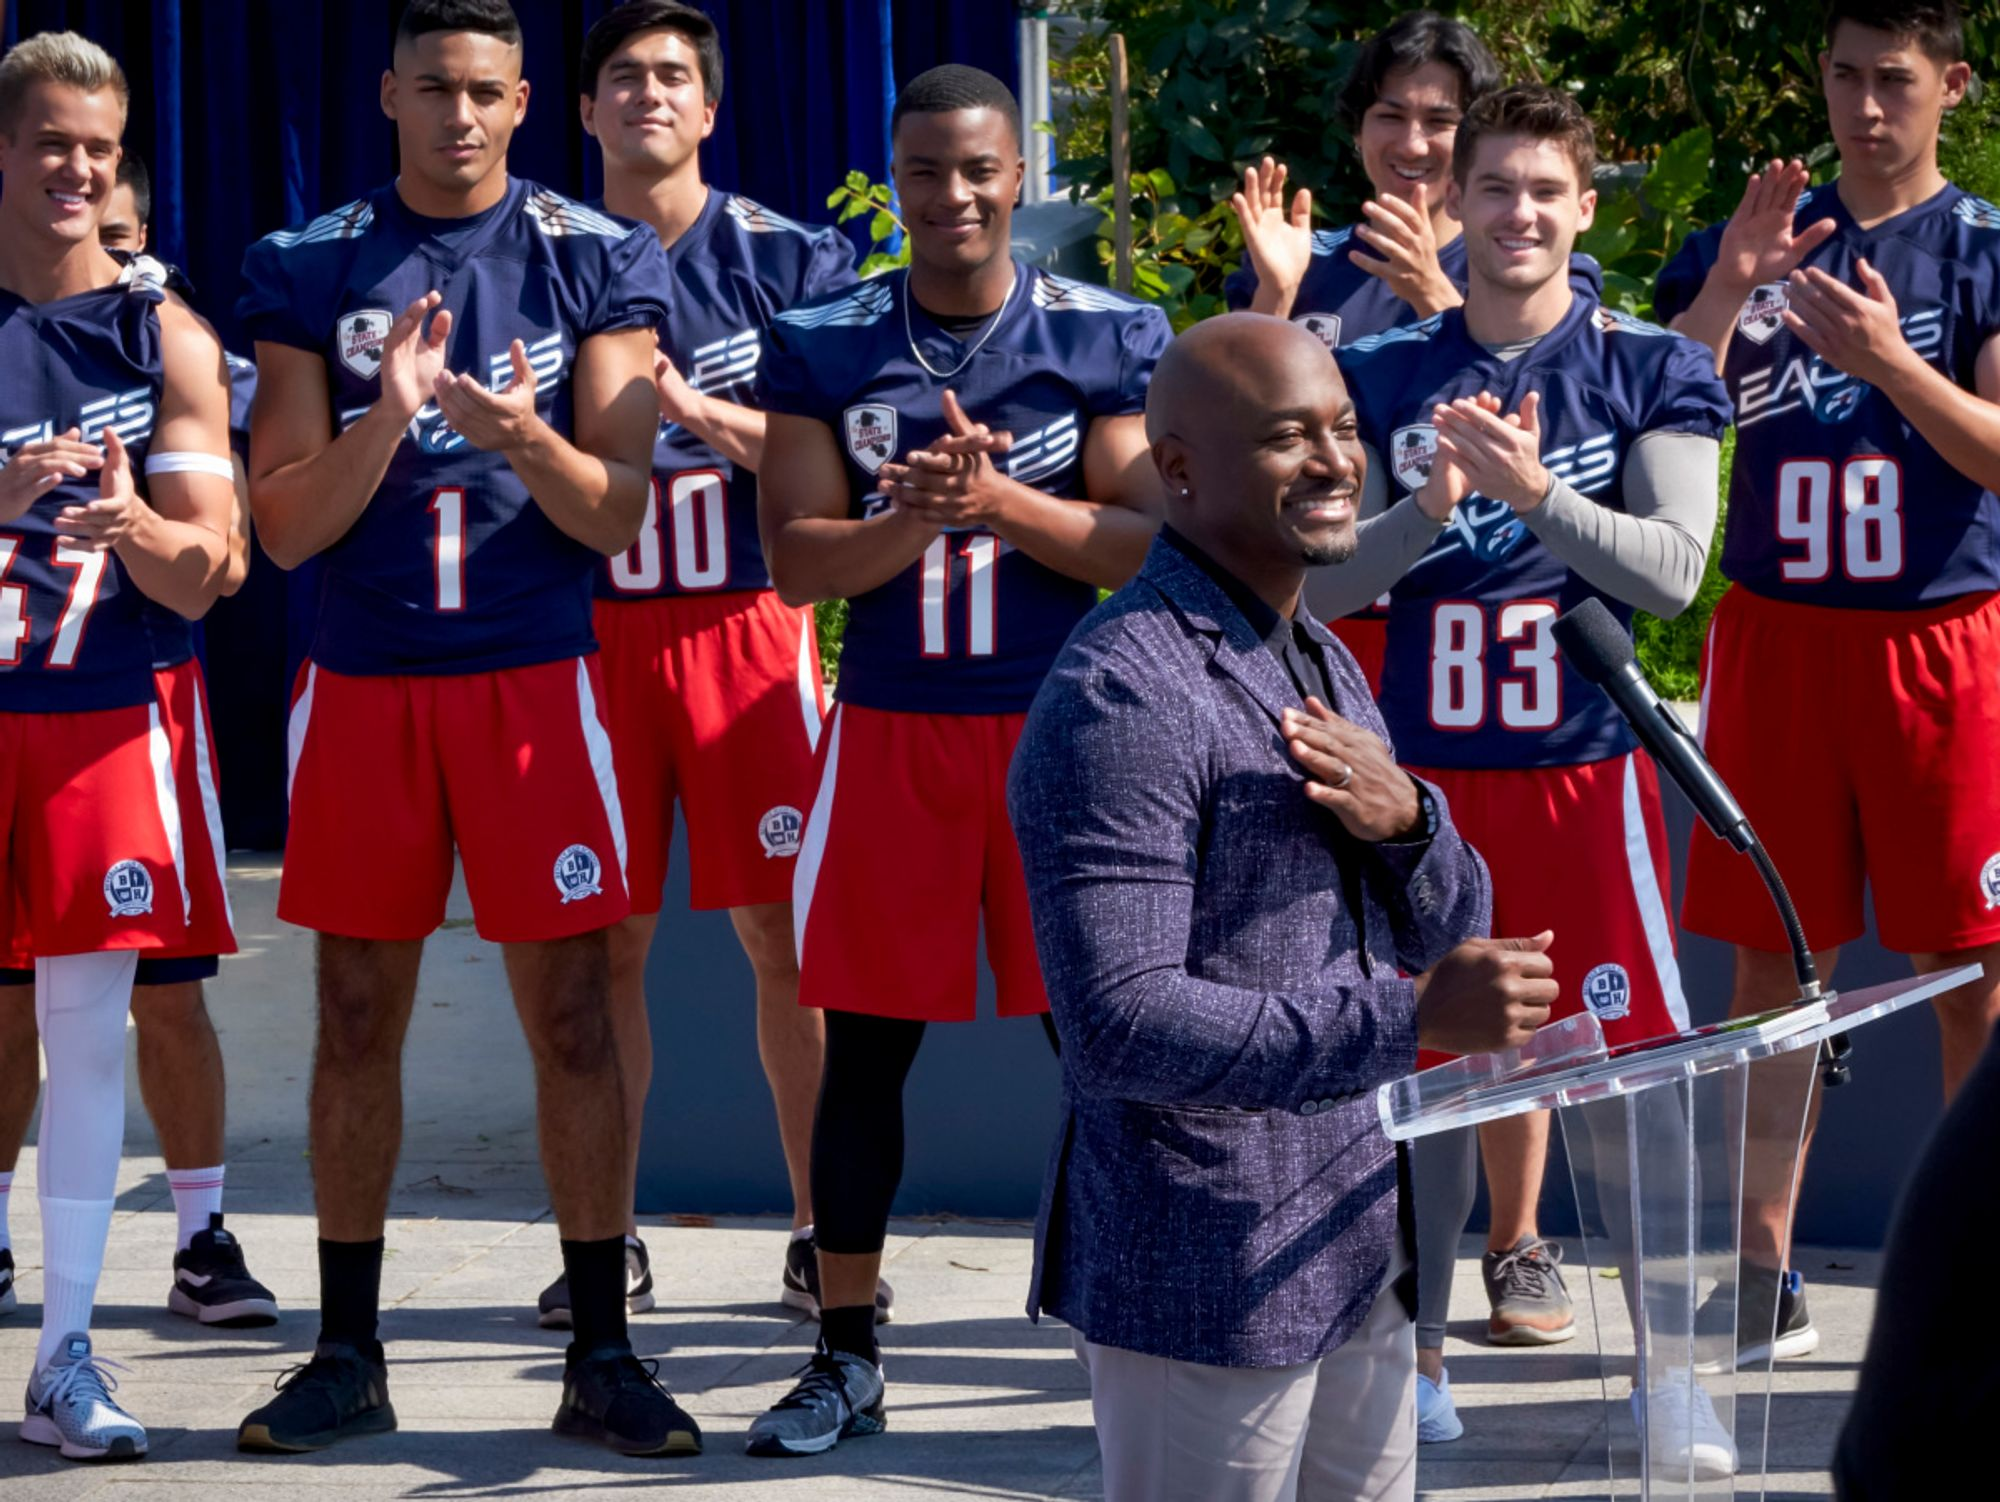 High school football players on TV show from The CW All American